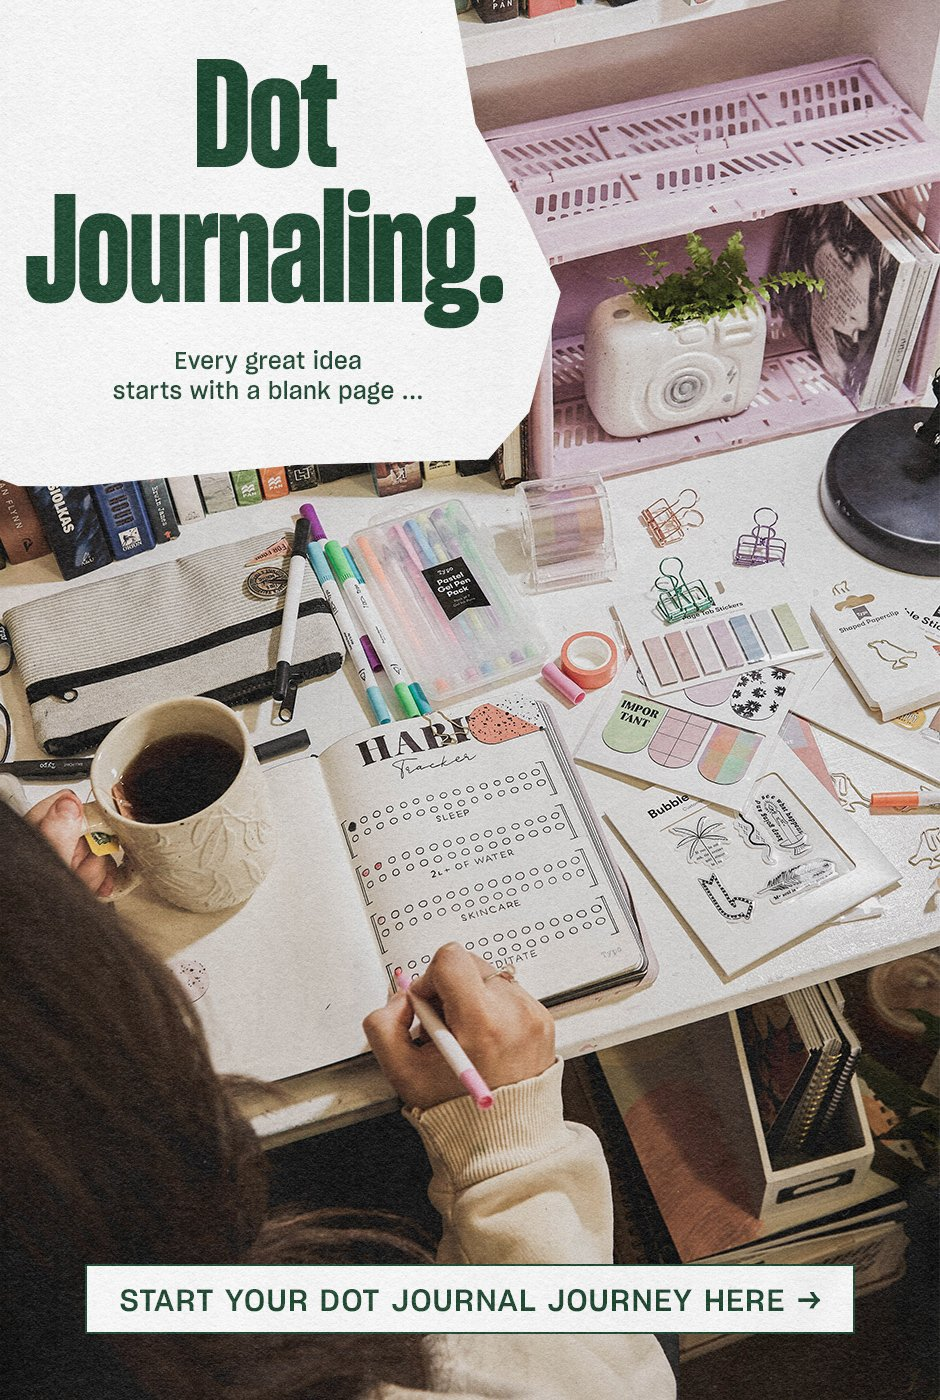 Shop Dot Journaling